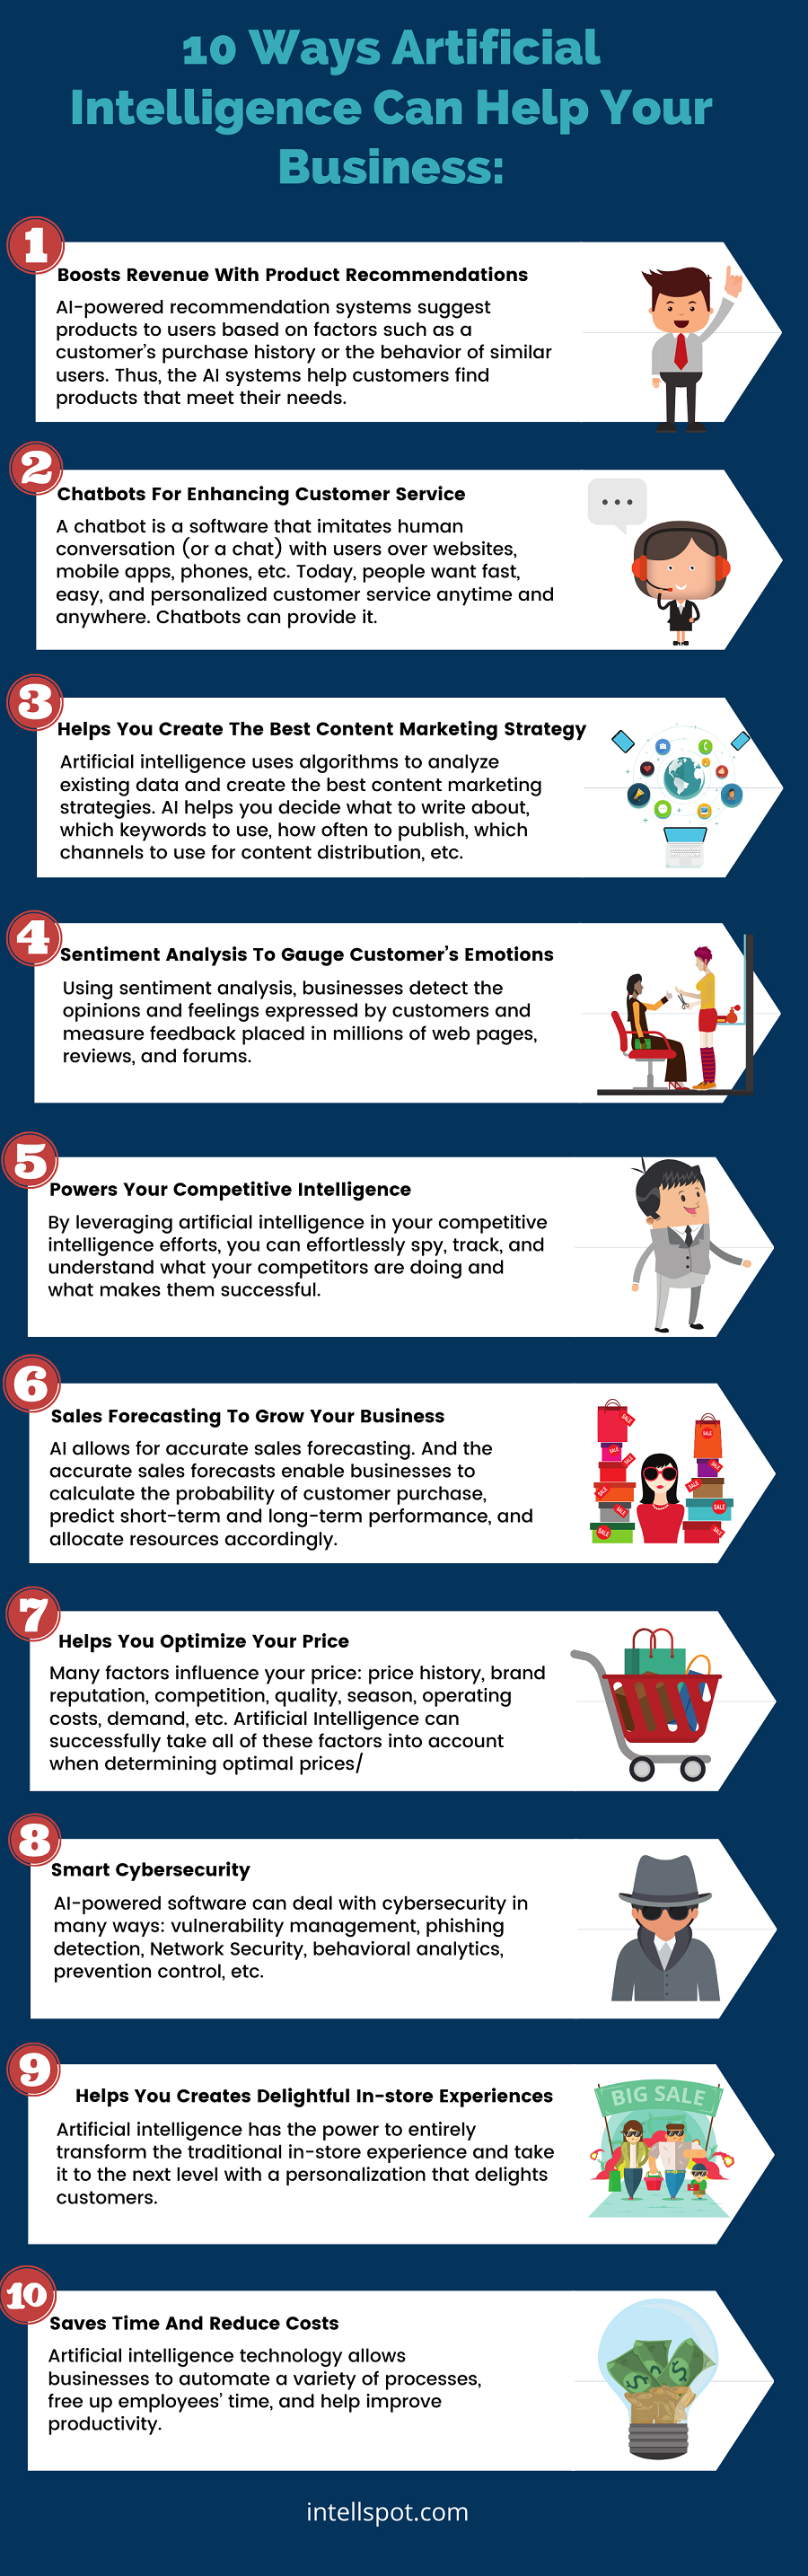 10 Ways Artificial Intelligence Can Help Your Business Content Marketing Strategy Sentiment Analysis Artificial Intelligence